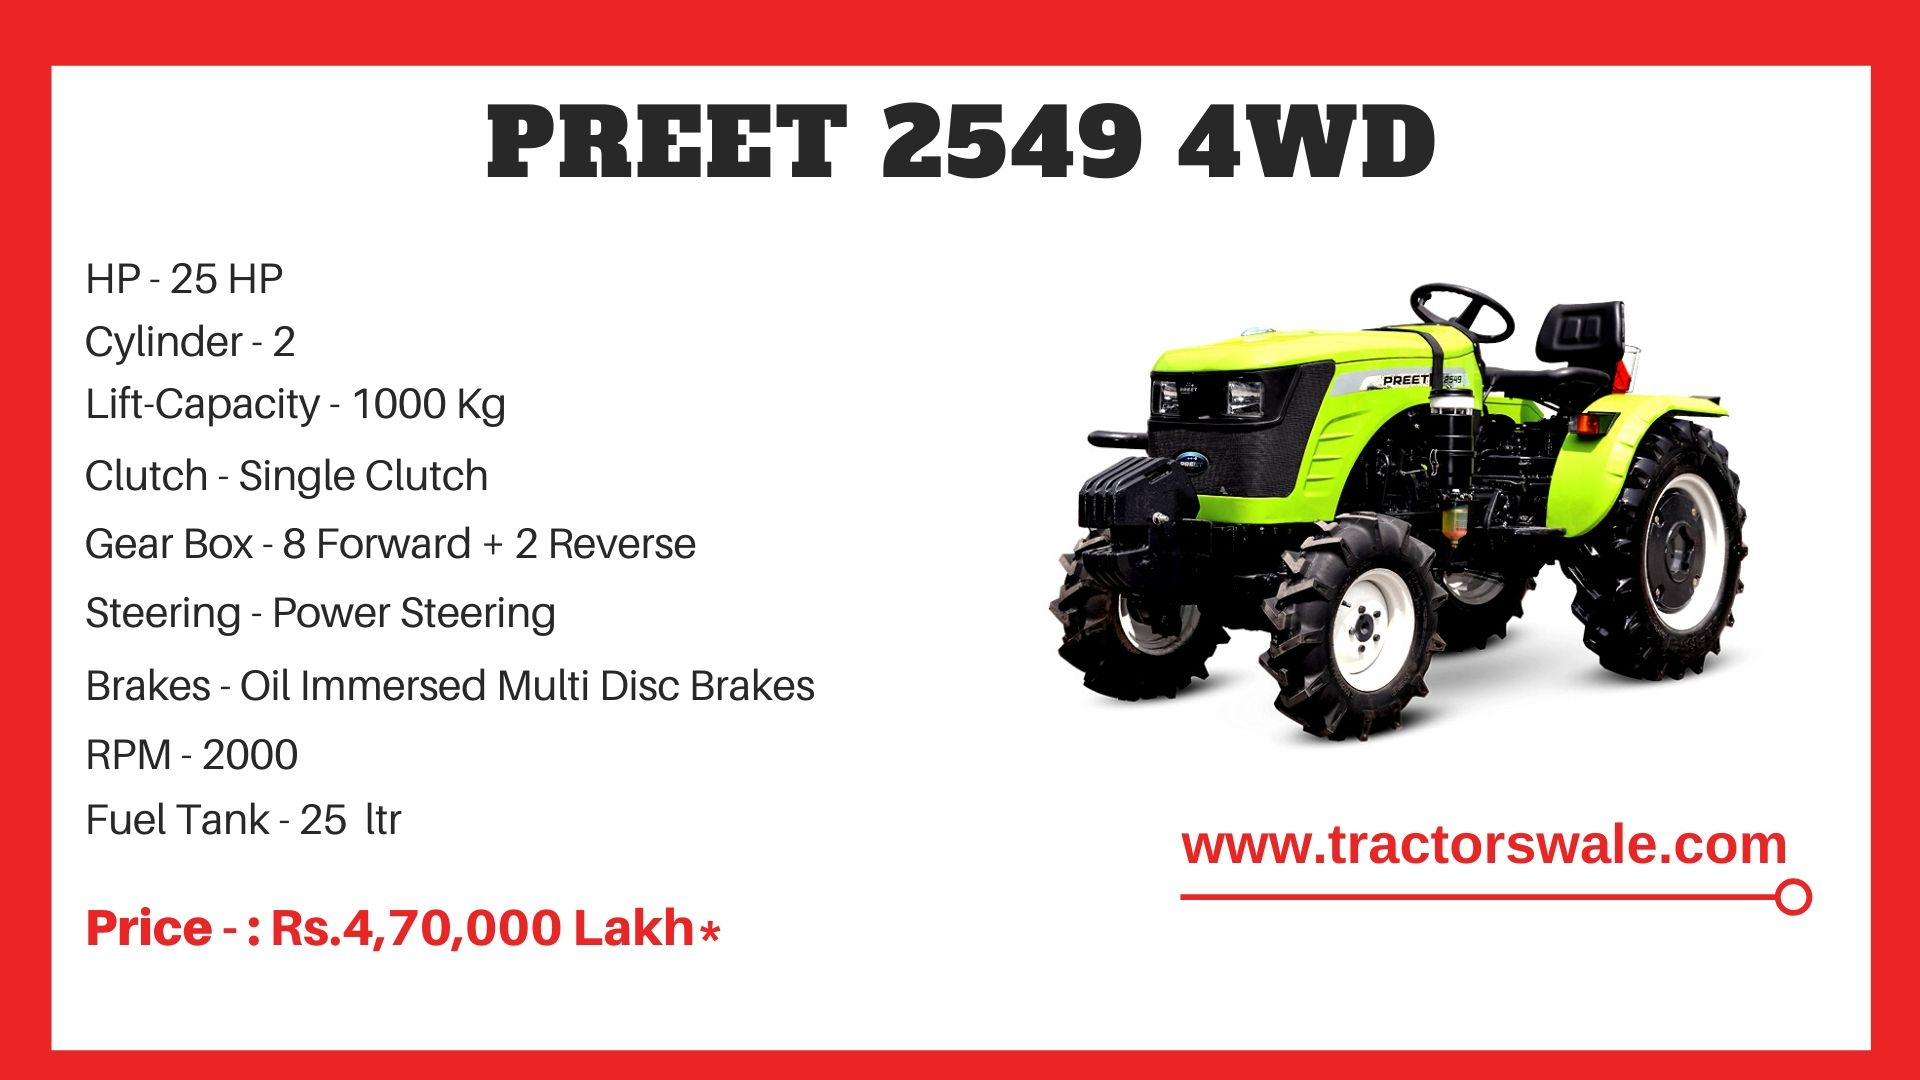 Preet 2549 4WD tractor price